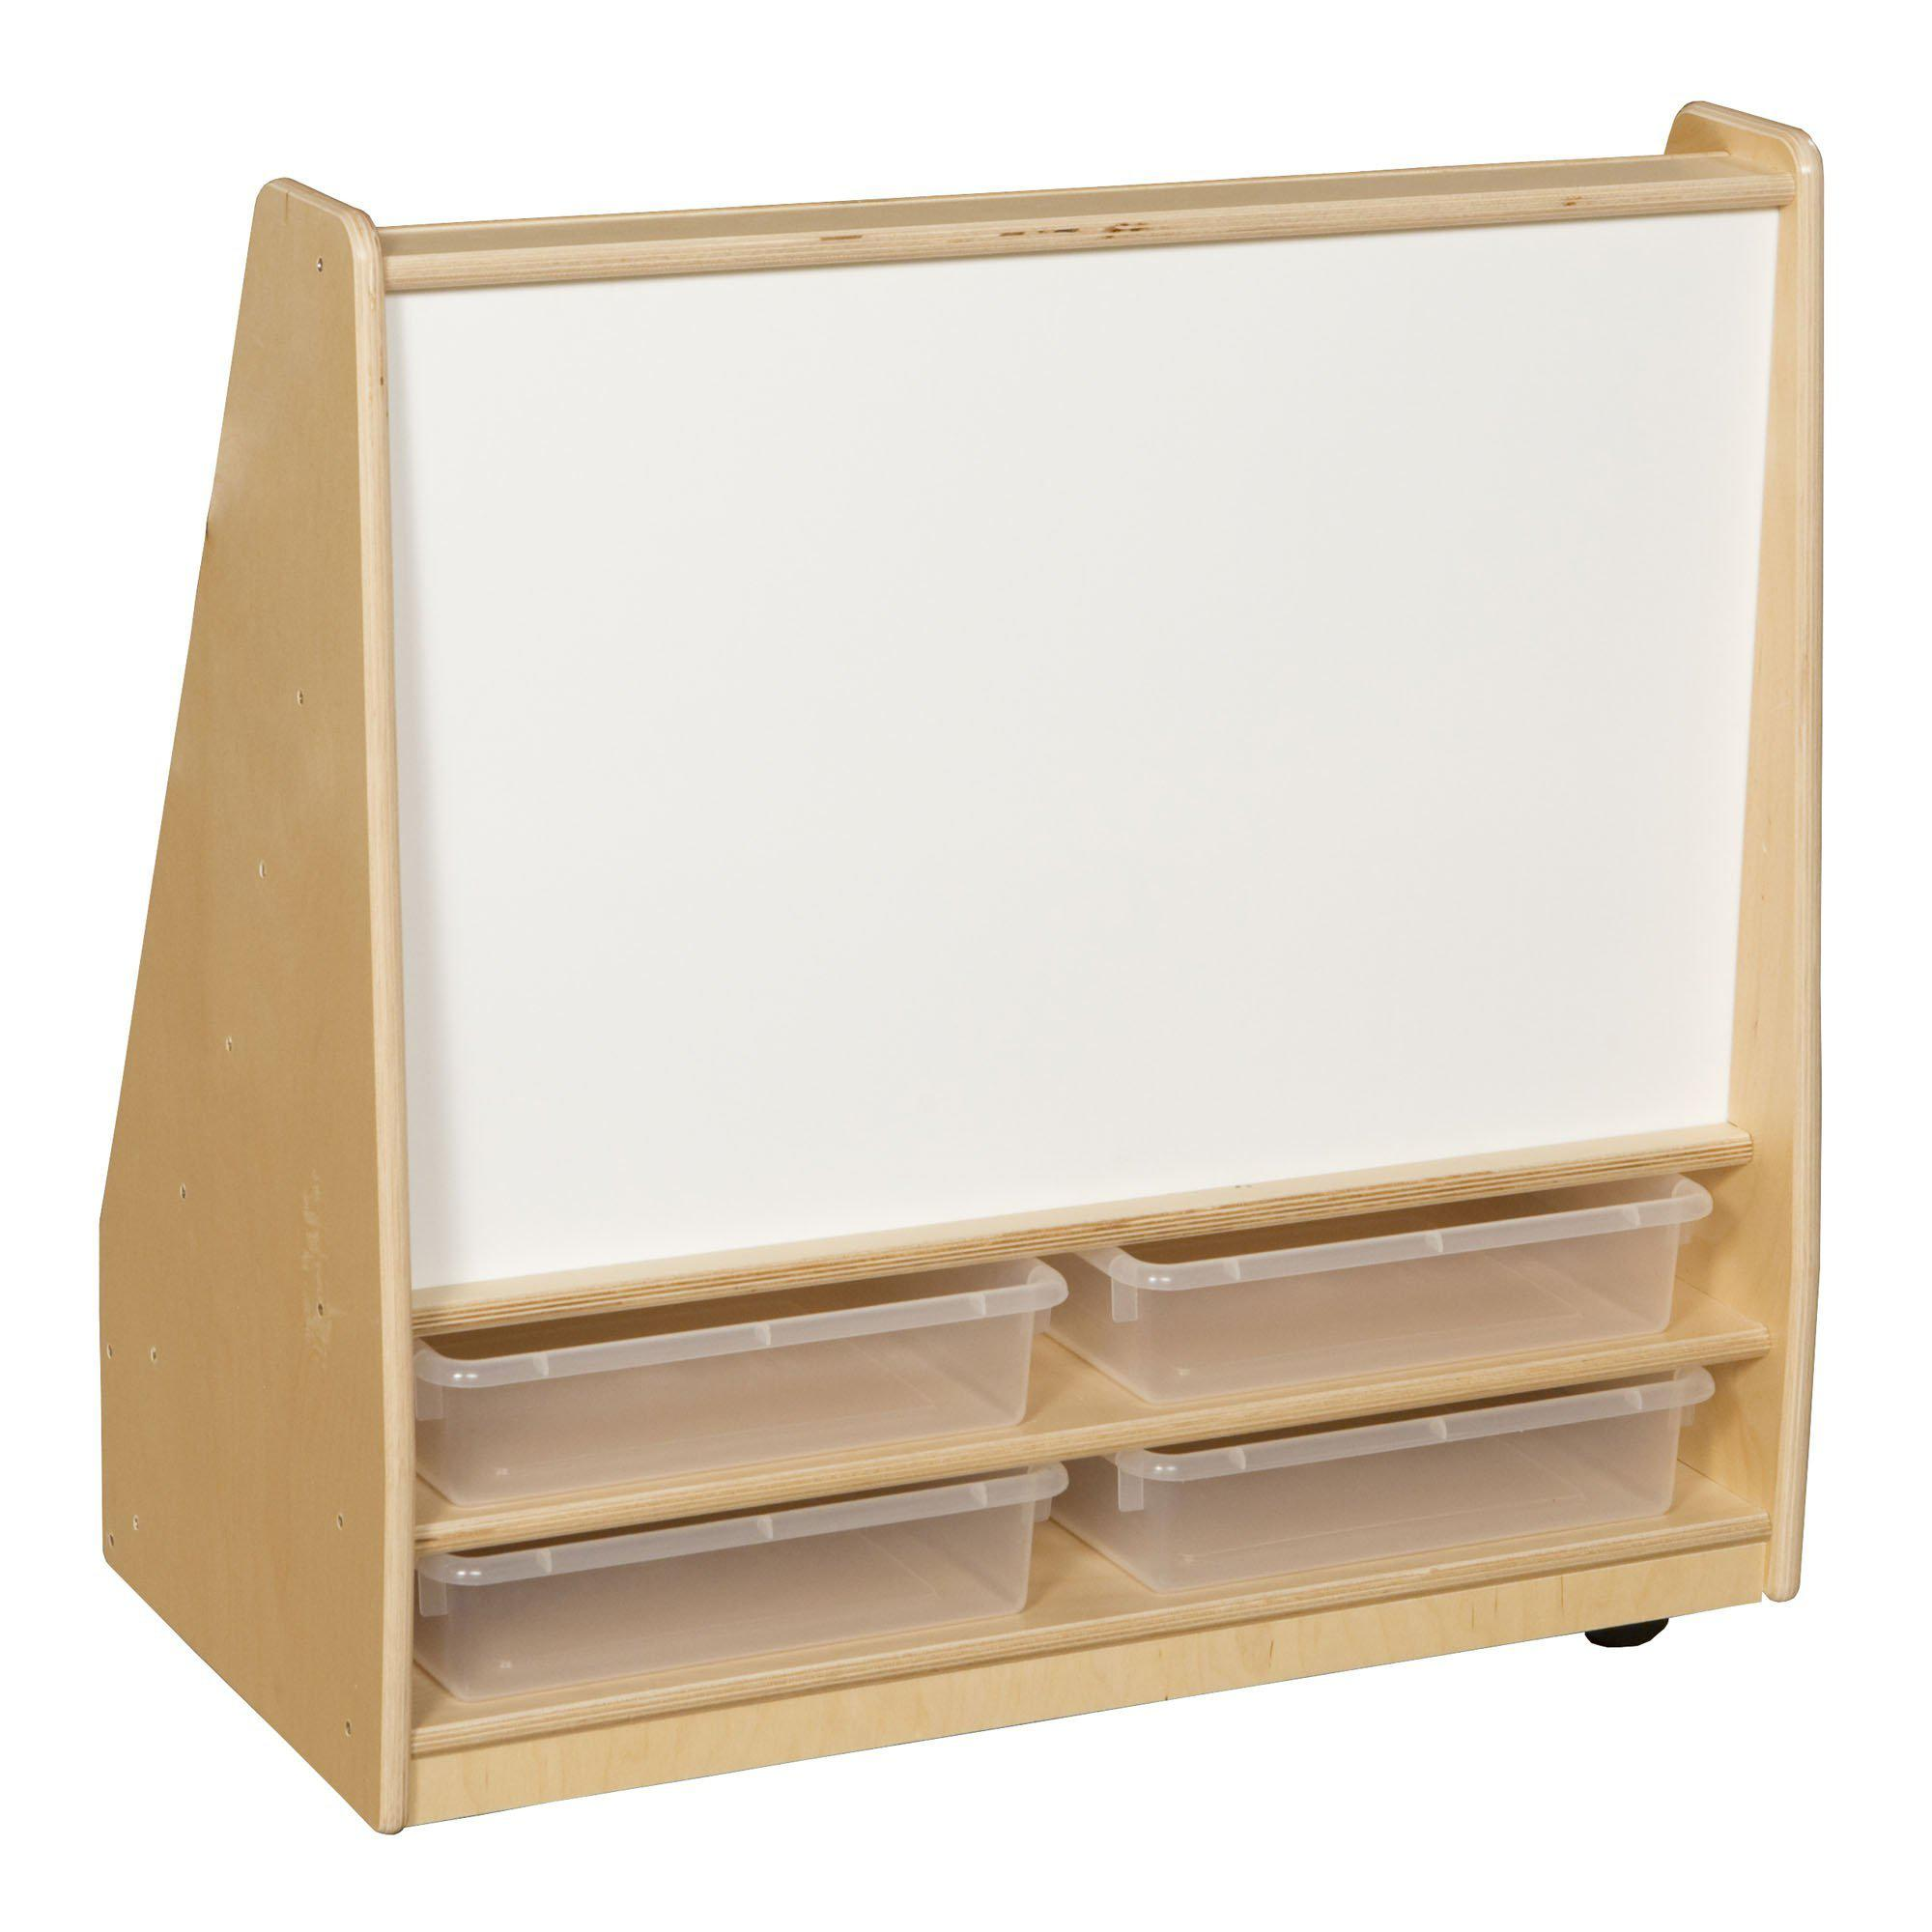 "Book Storage & Display with Markerboard, (4) 3"" Translucent Letter Trays"